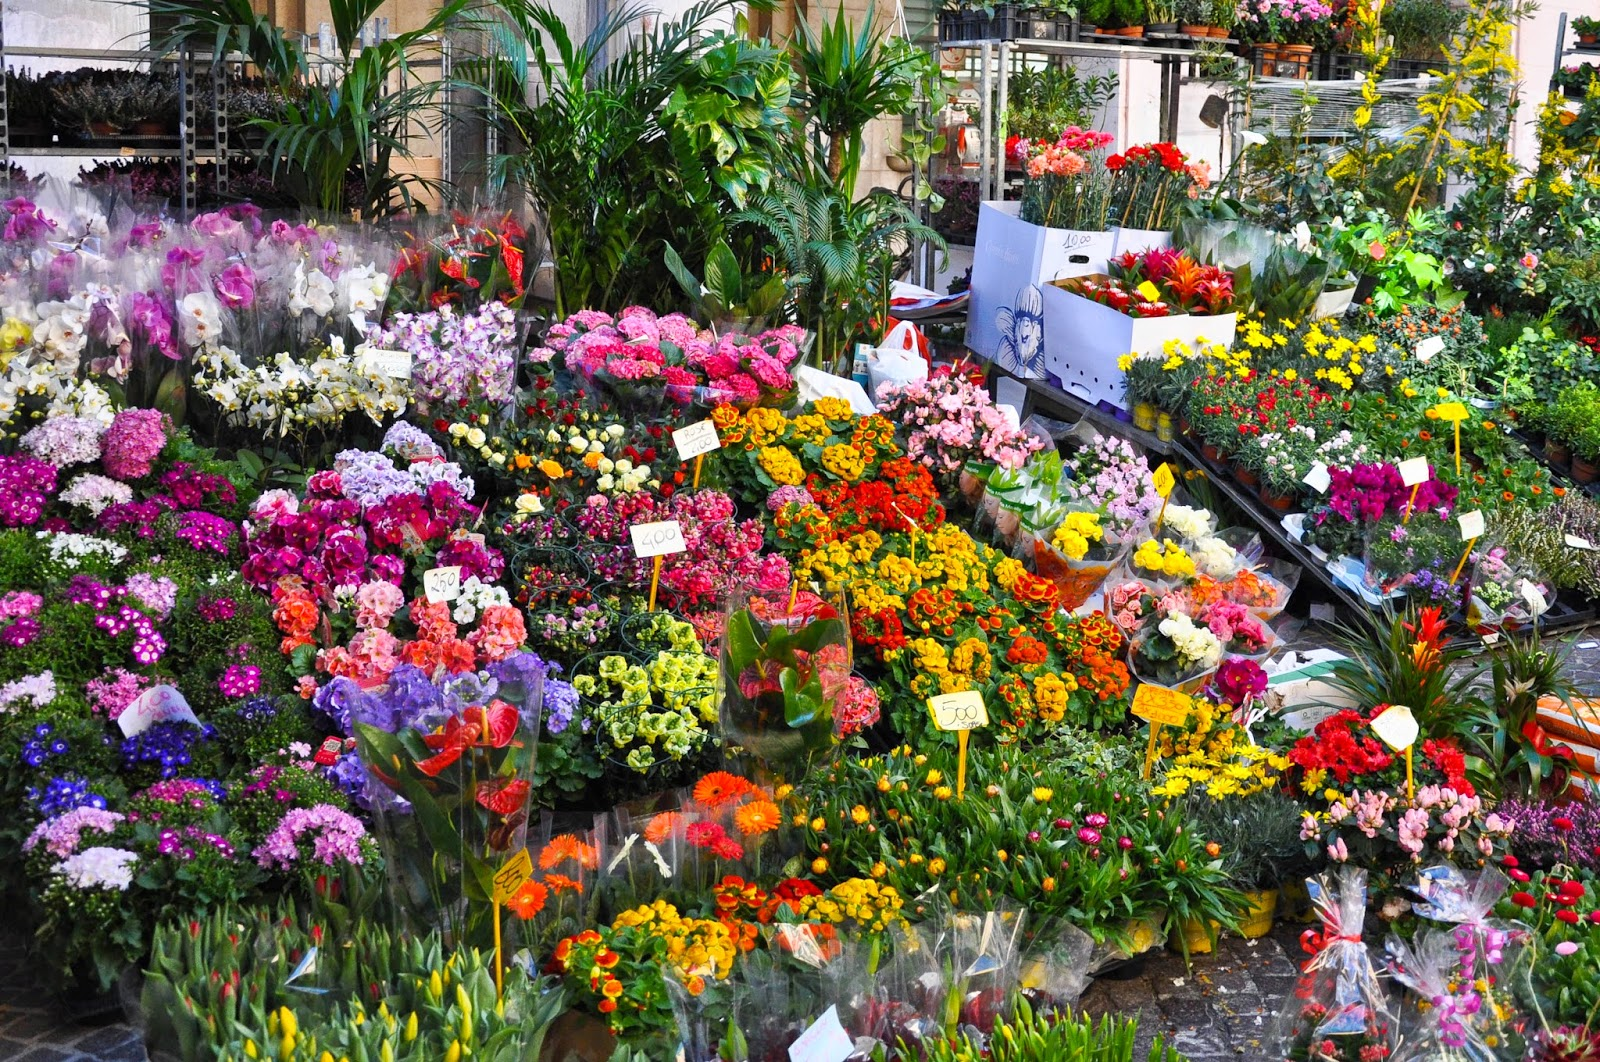 The garden stall at the Thursday market in Vicenza, Italy-2